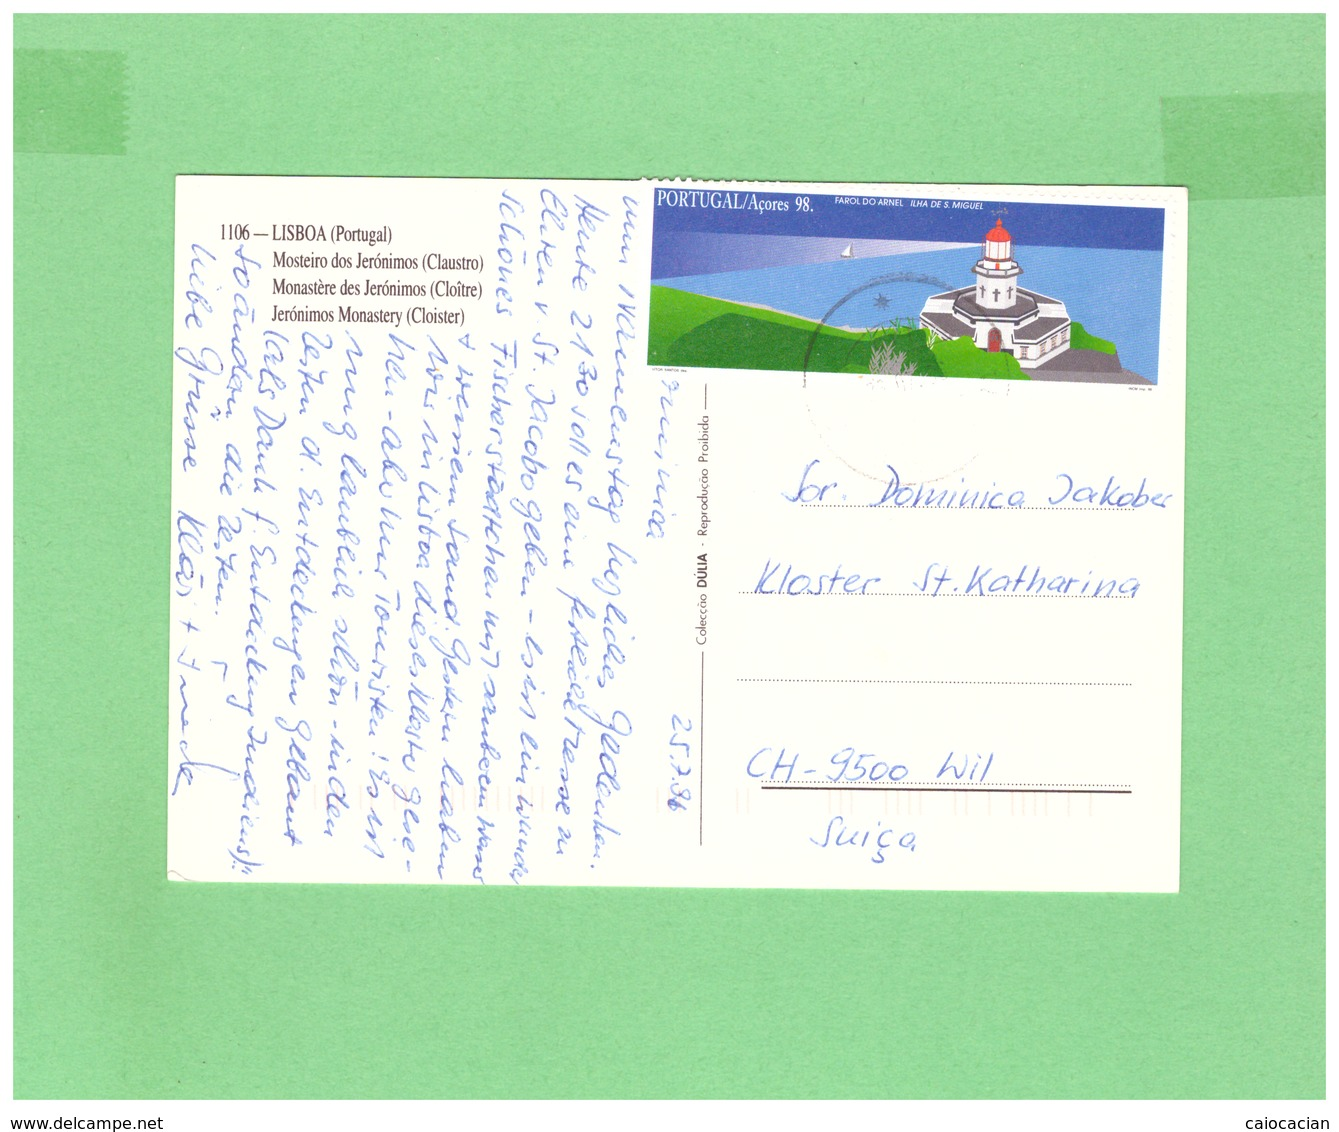 1998 PORTUGAL POSTCARD WITH 1 STAMP TO SWISS - 1910 - ... Repubblica